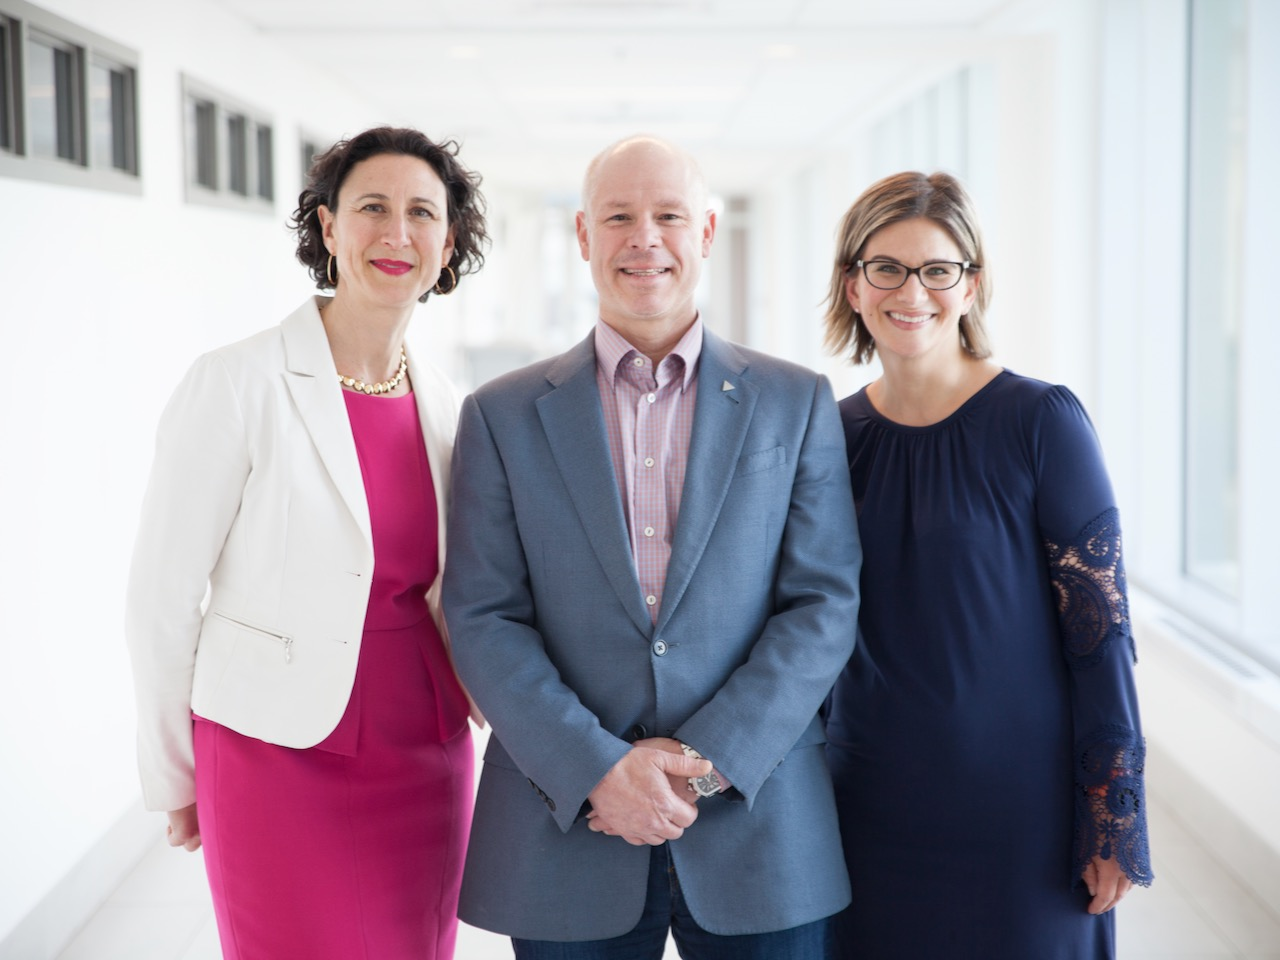 Image of three people in formal outfits posing for photo